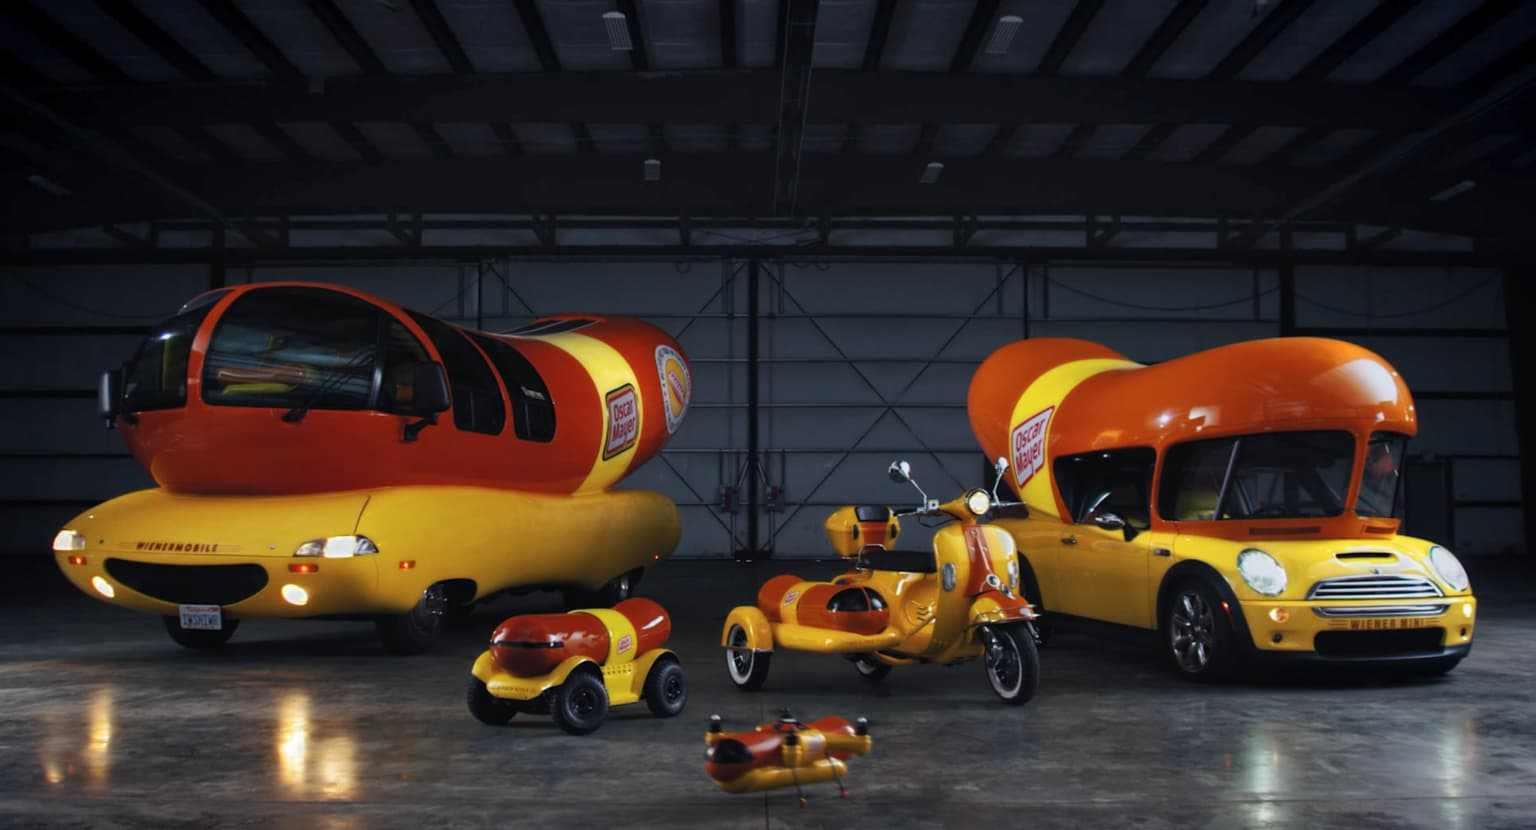 Oscar Mayer - For The Love of Hotdogs